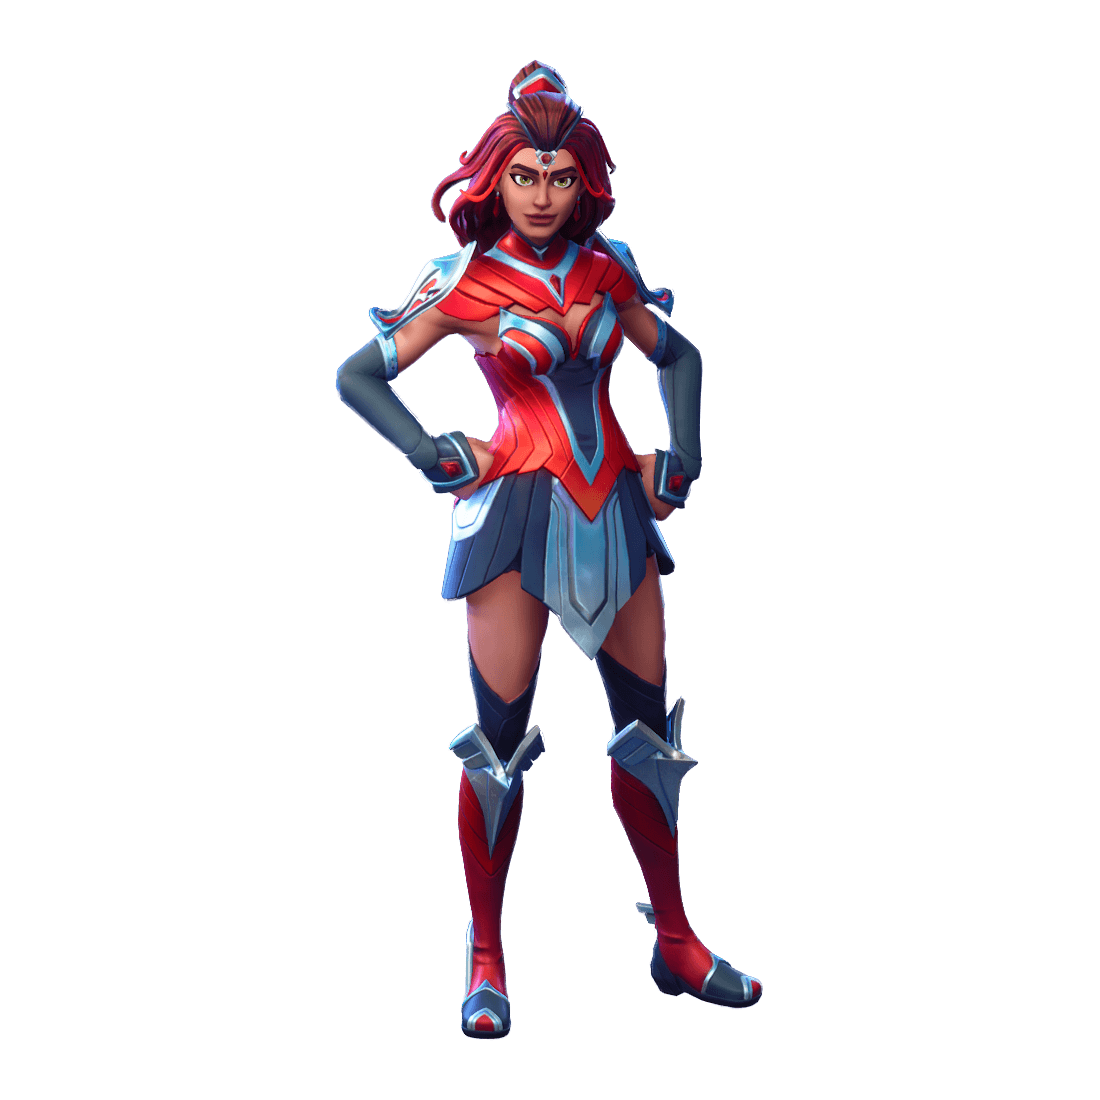 Fortnite Valor | Outfits - Fortnite Skins